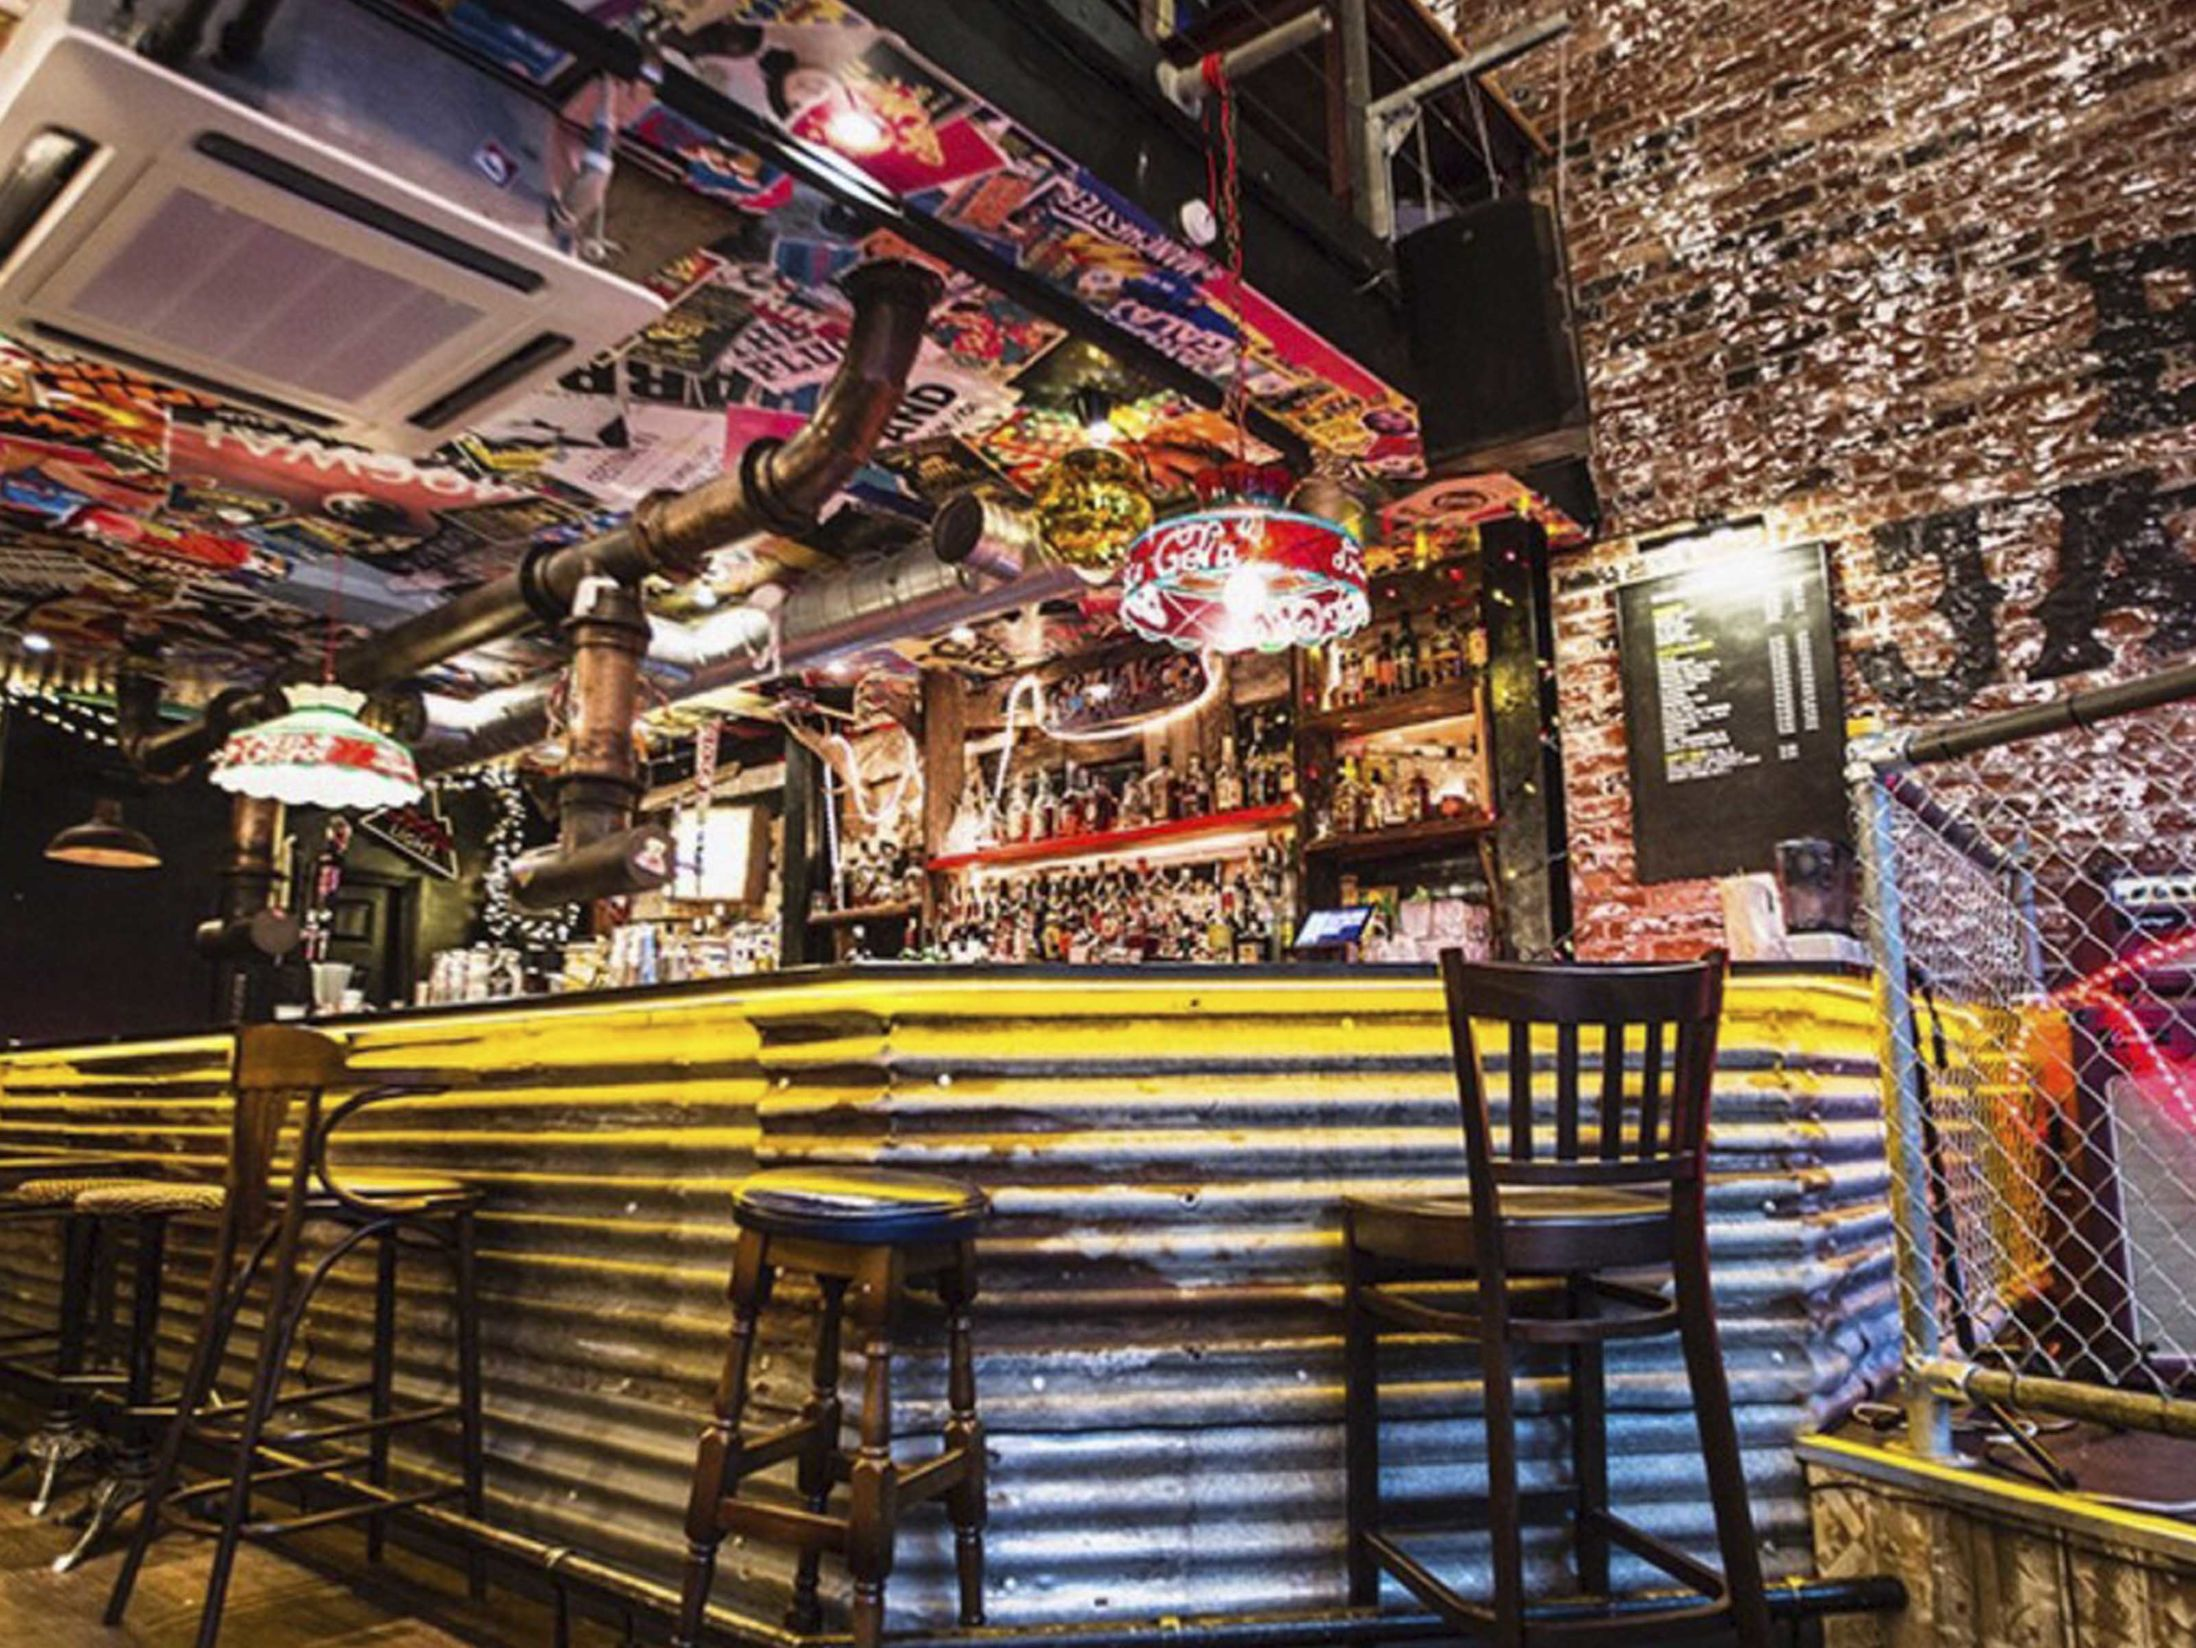 Best Bars in Manchester - Bunny Jackson's